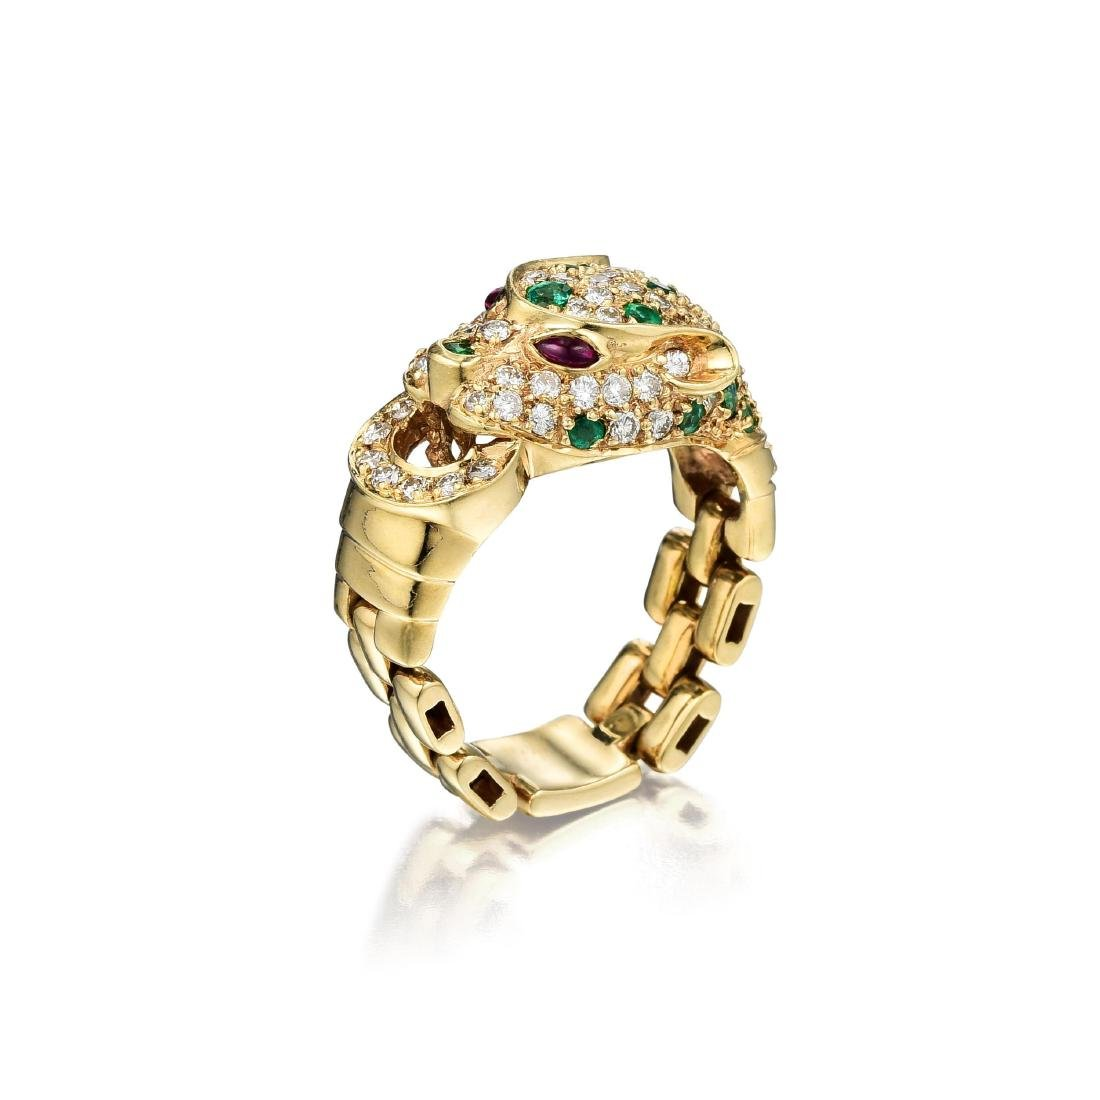 A 14K Gold Ruby Emerald and Diamond Panther Ring